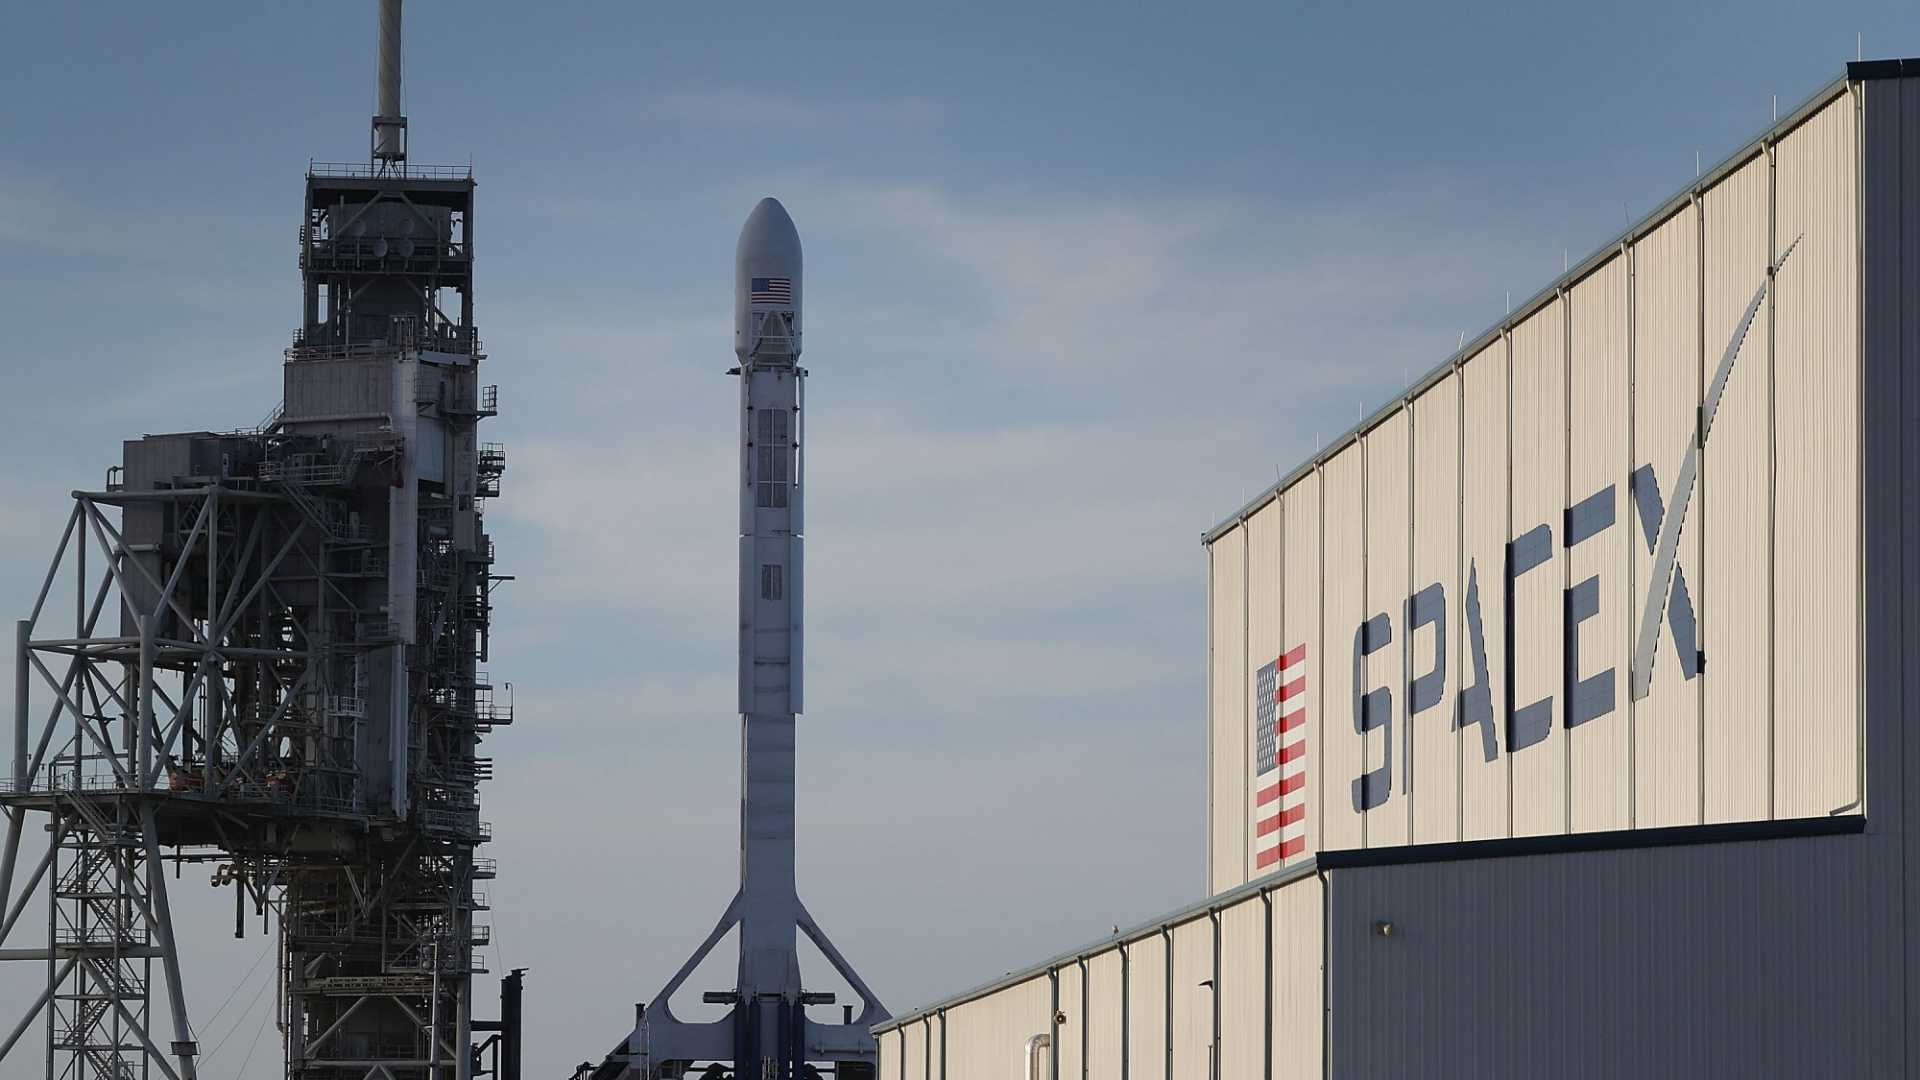 The Real Reason Behind SpaceX's Push for Reusable Rockets